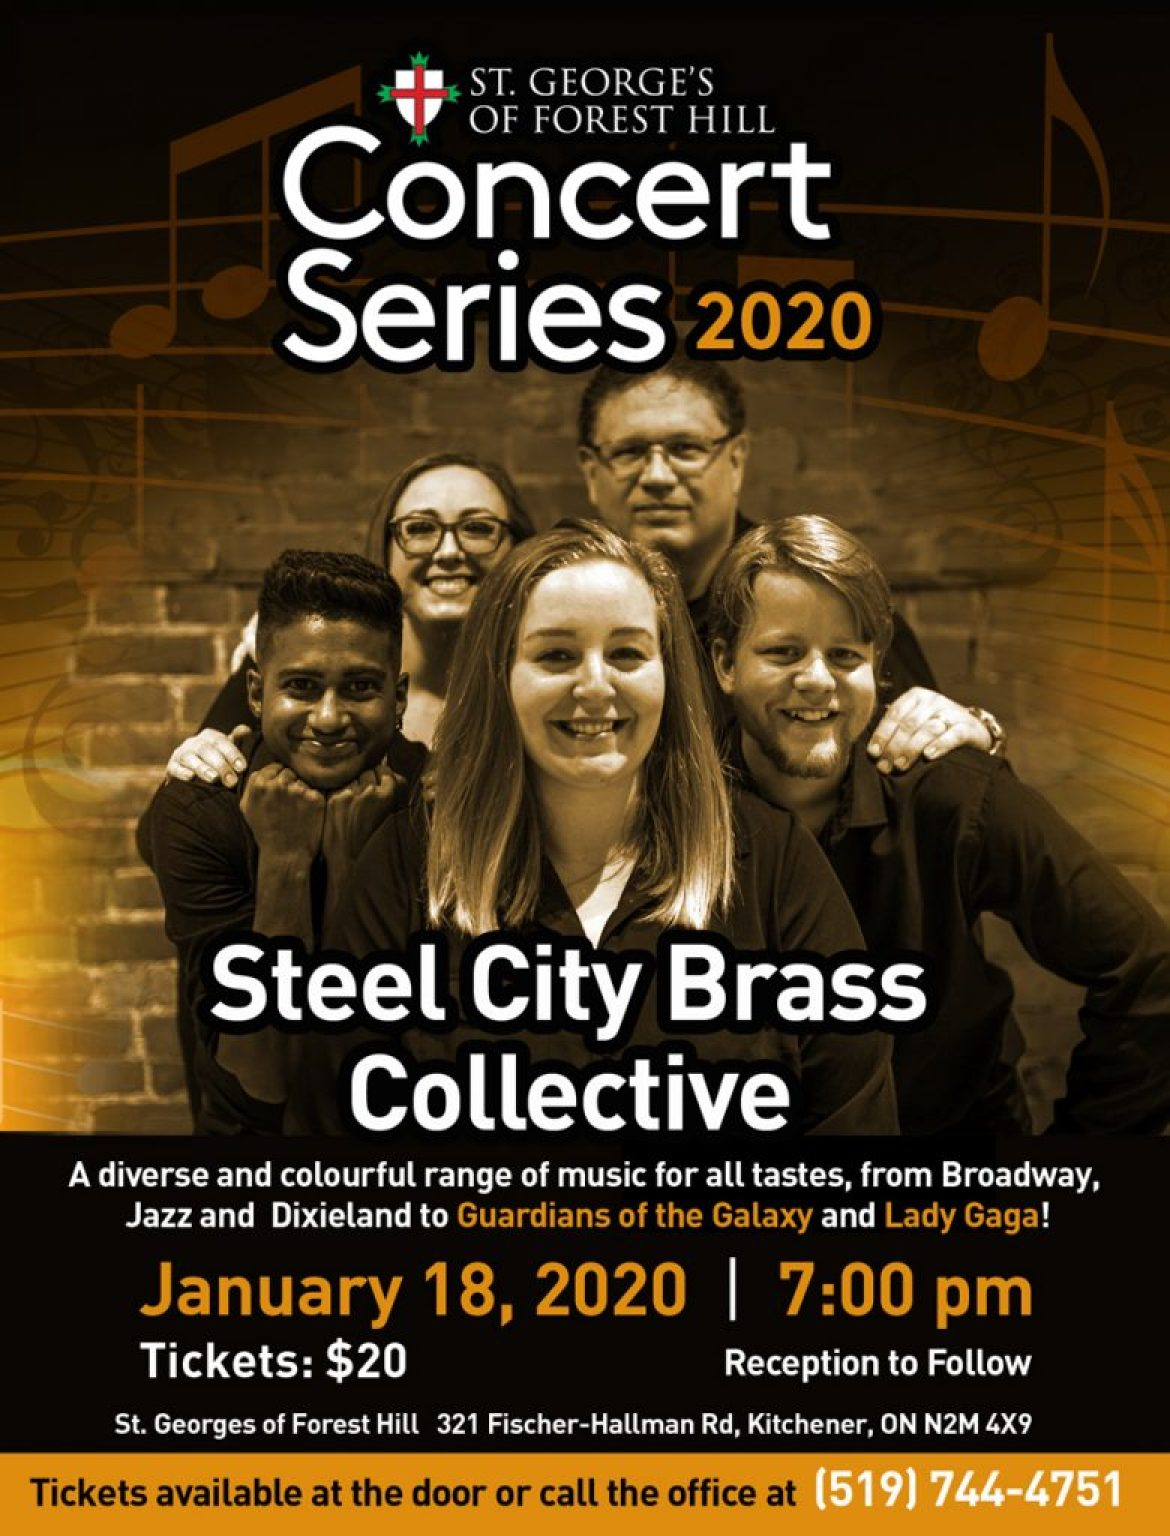 Concert Series – Steel City Brass Collective